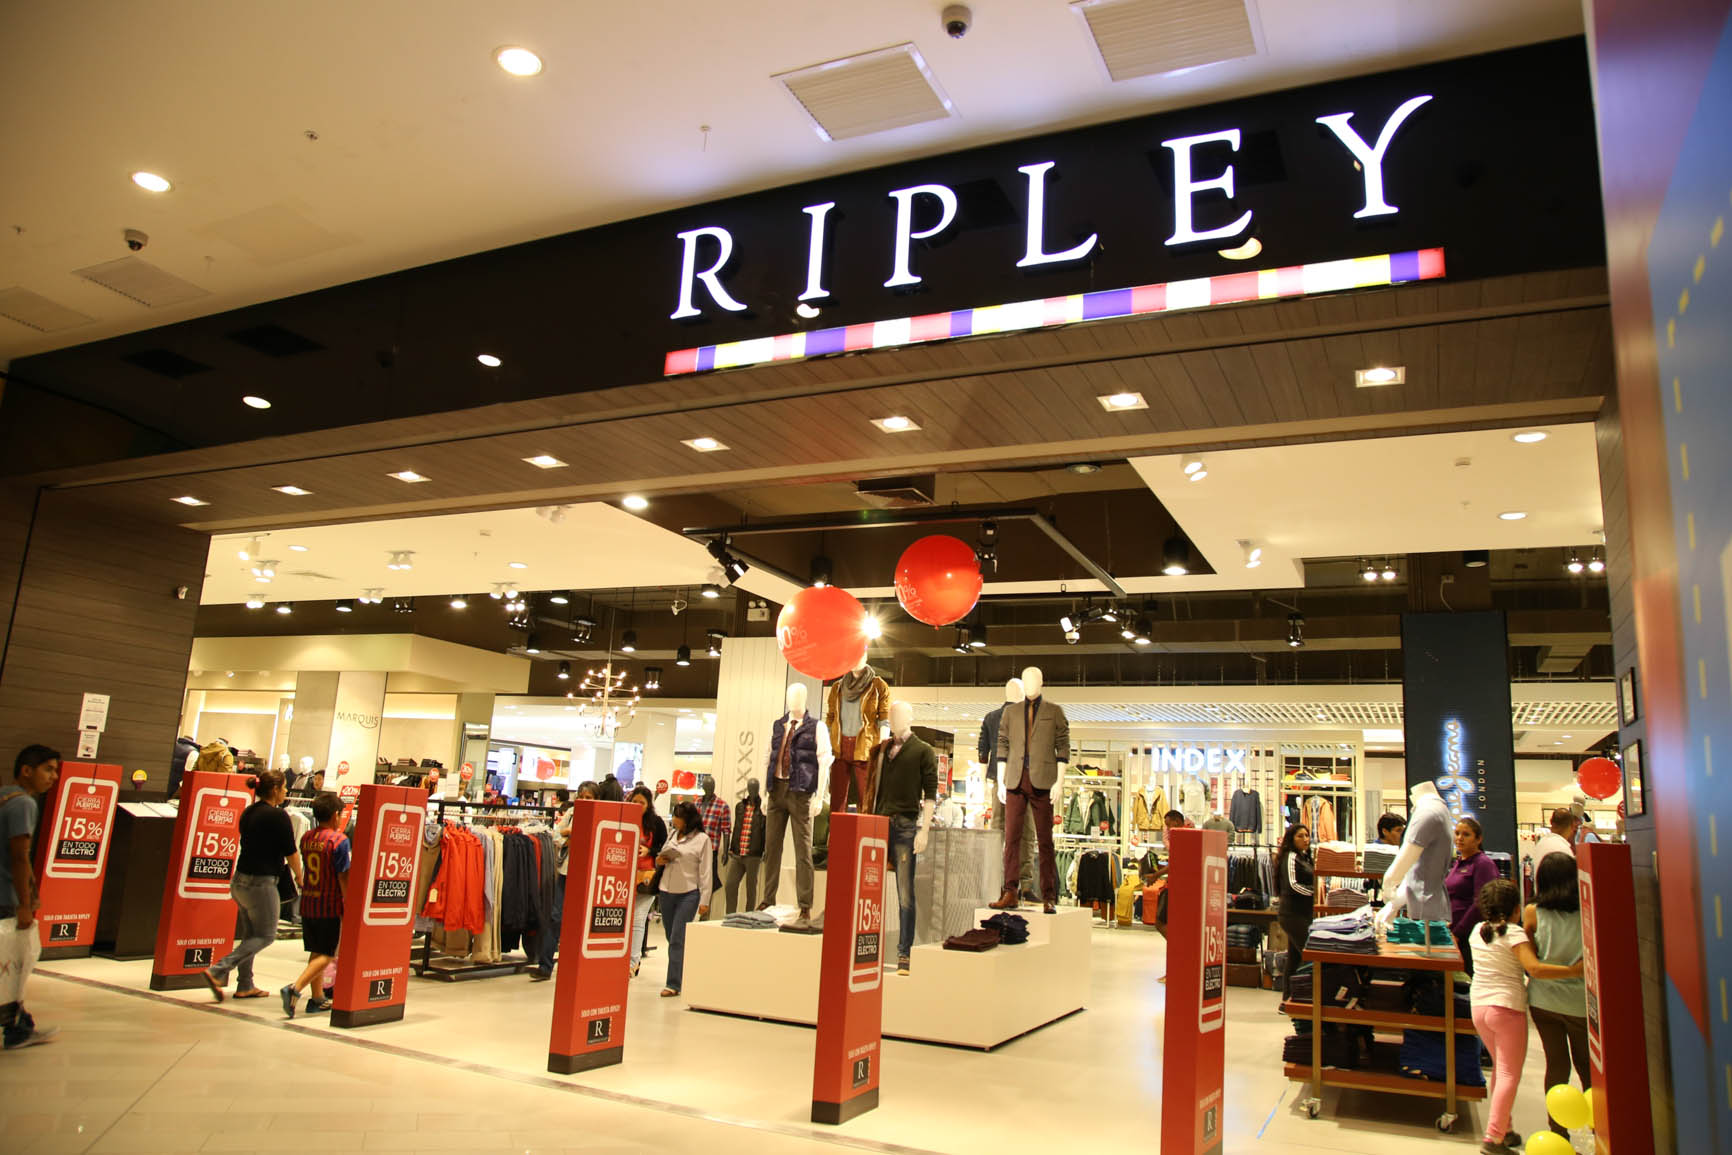 Ripley es adquirida por Liverpool